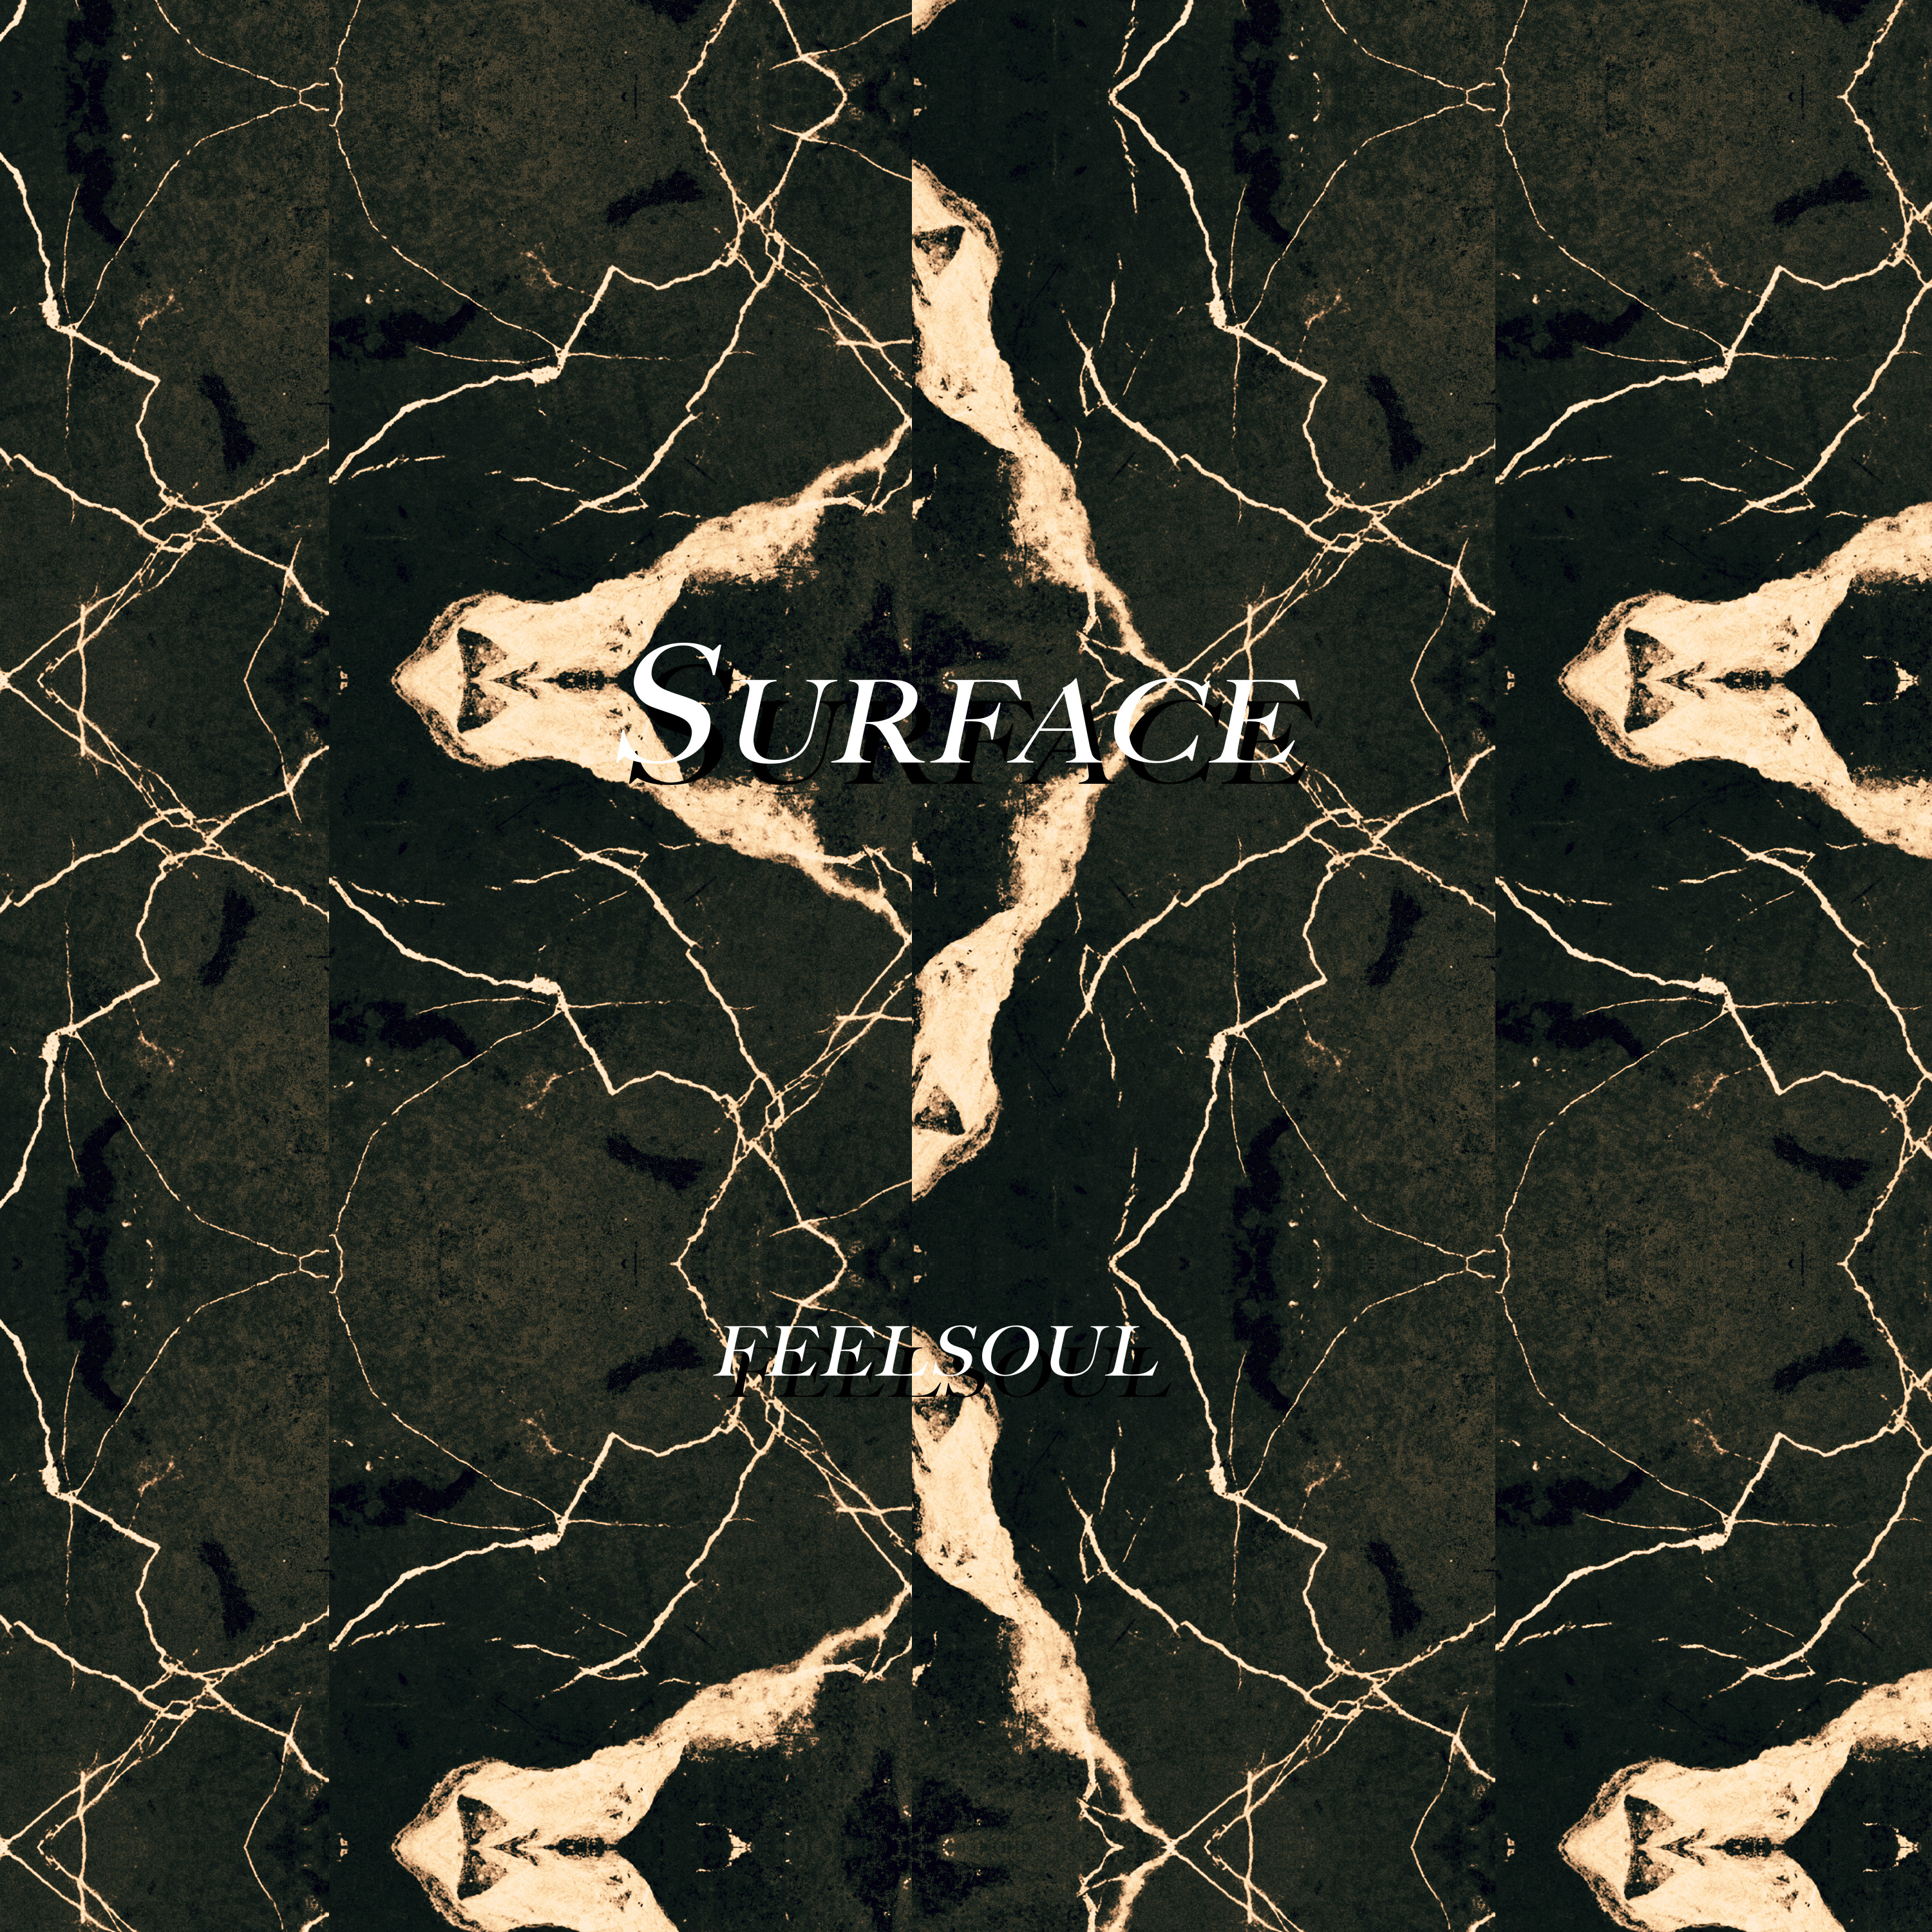 FEELSOUL is back on the scene with a brand new release: The Surface.